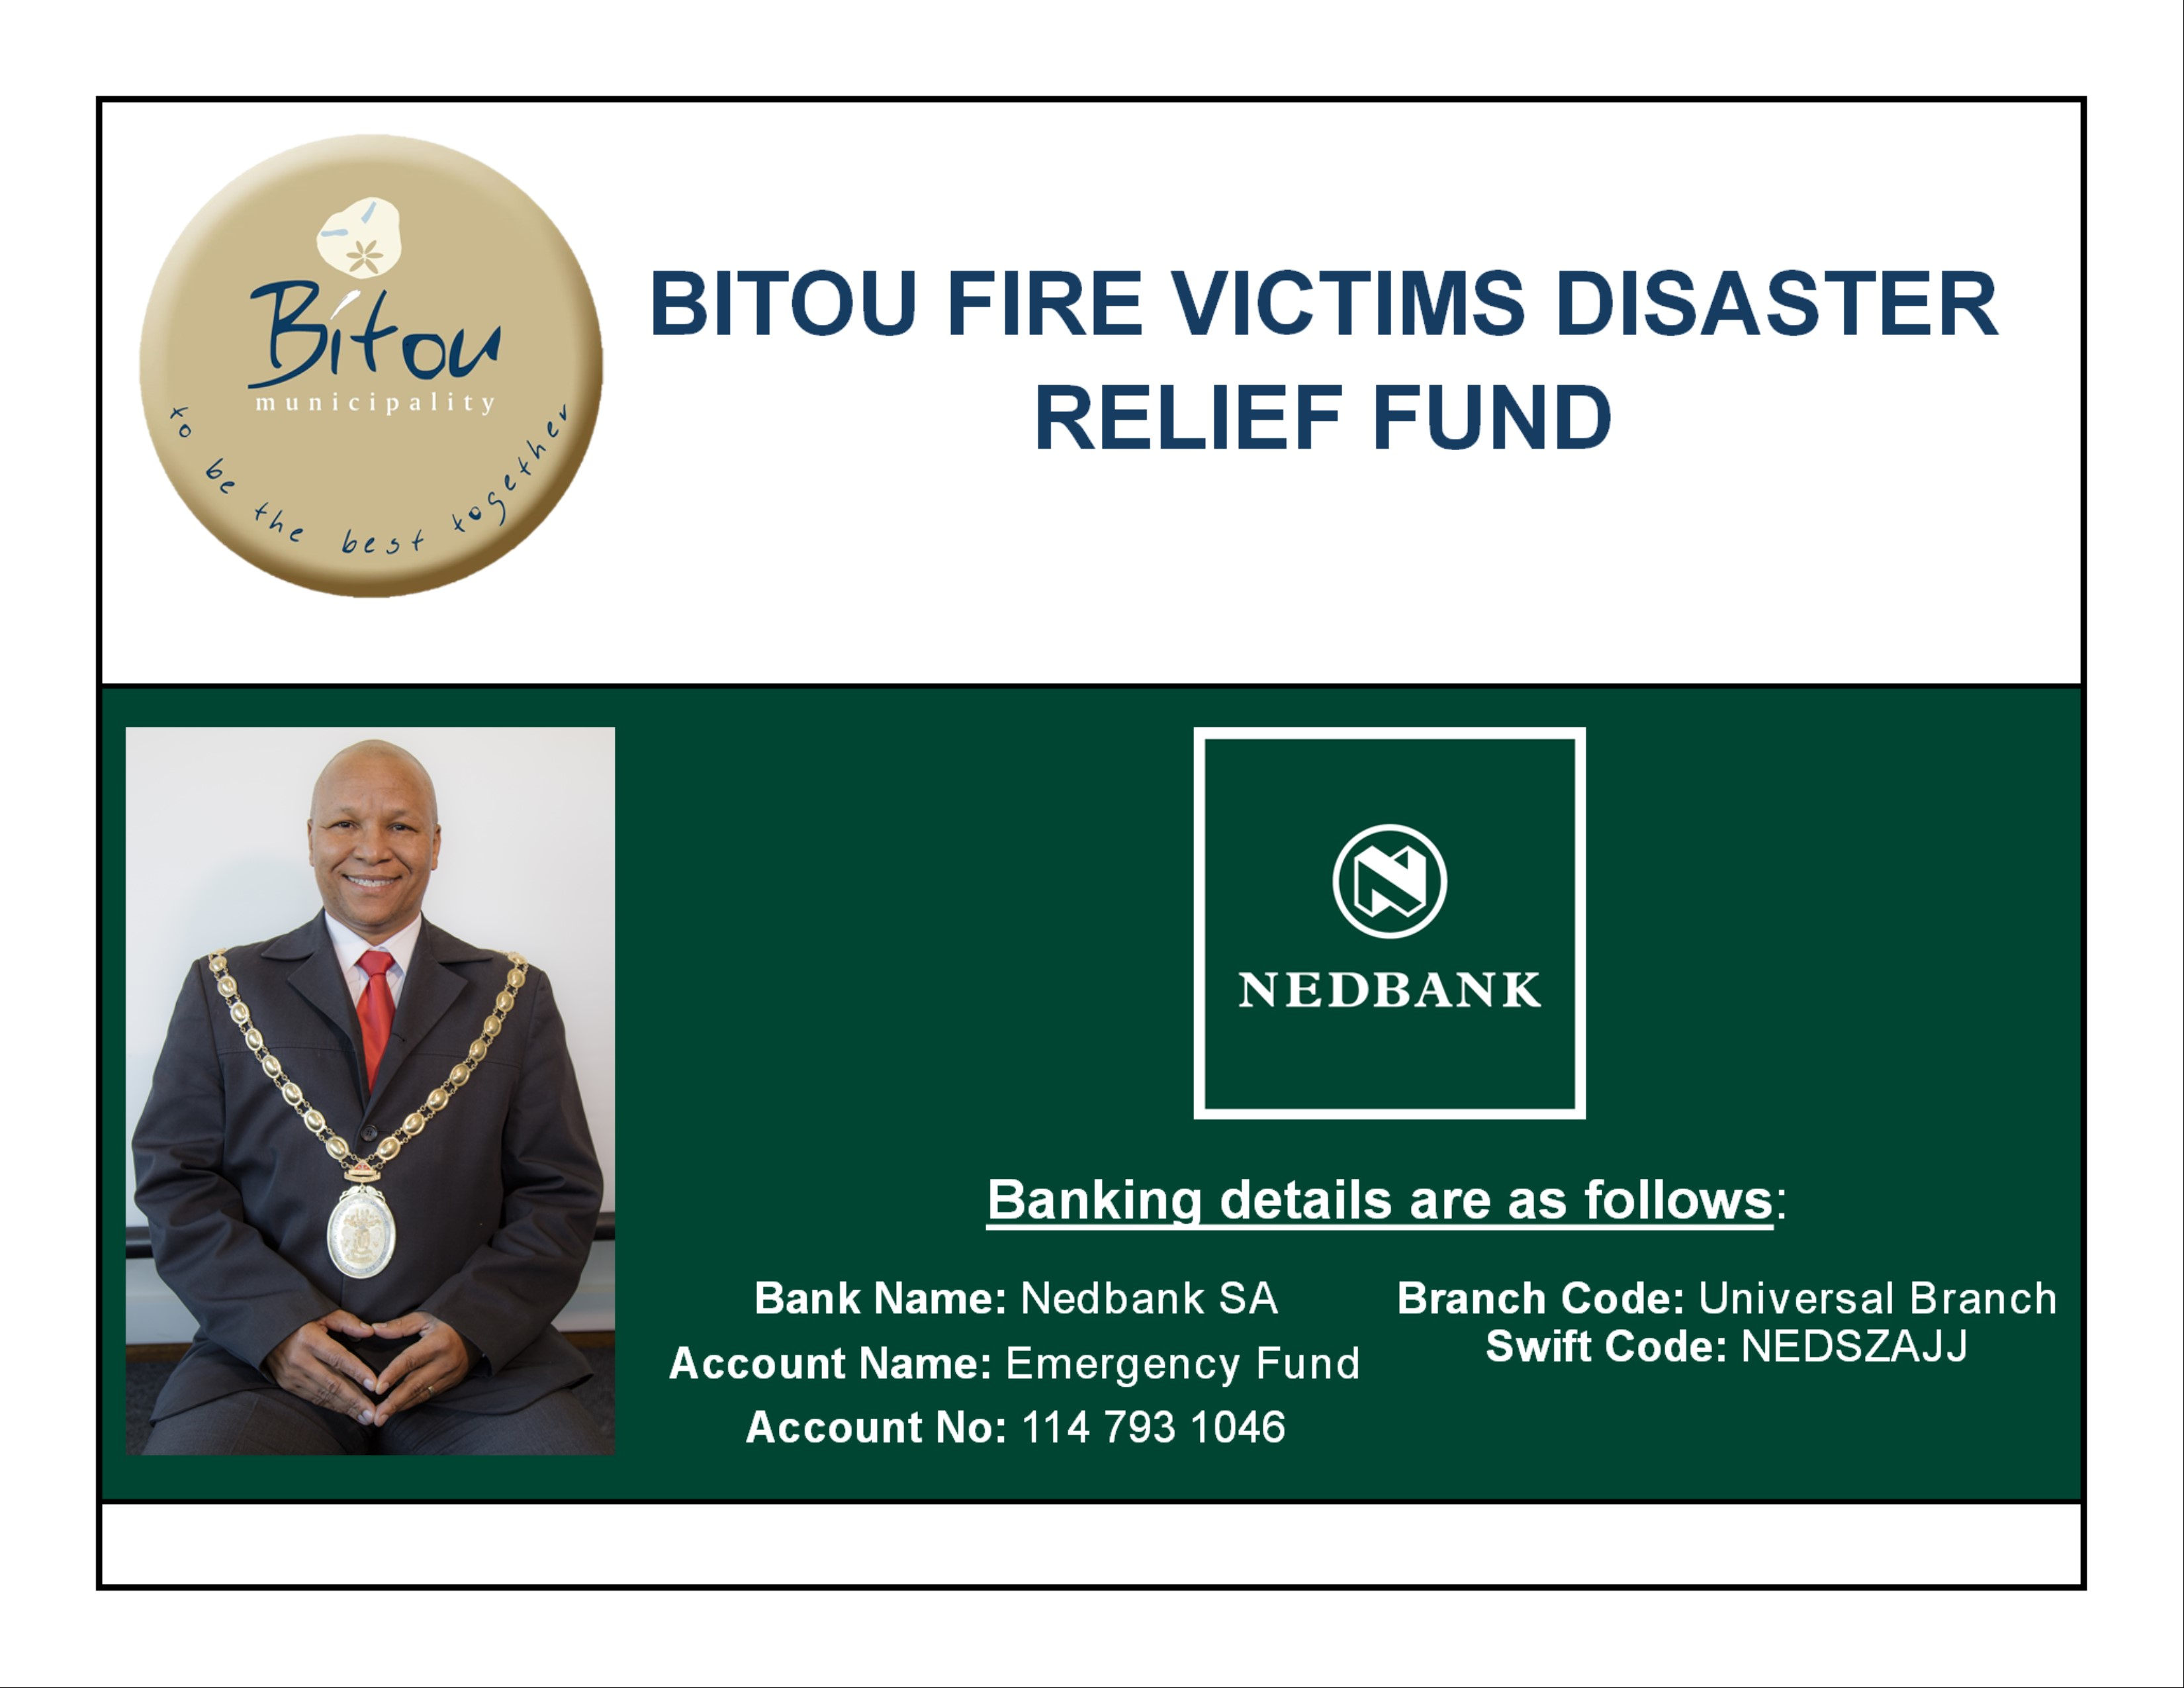 BITOU MUNICIPALITY'S EXECUTIVE MAYOR - RESPONSE TO THE RECENT FIRE DISASTER